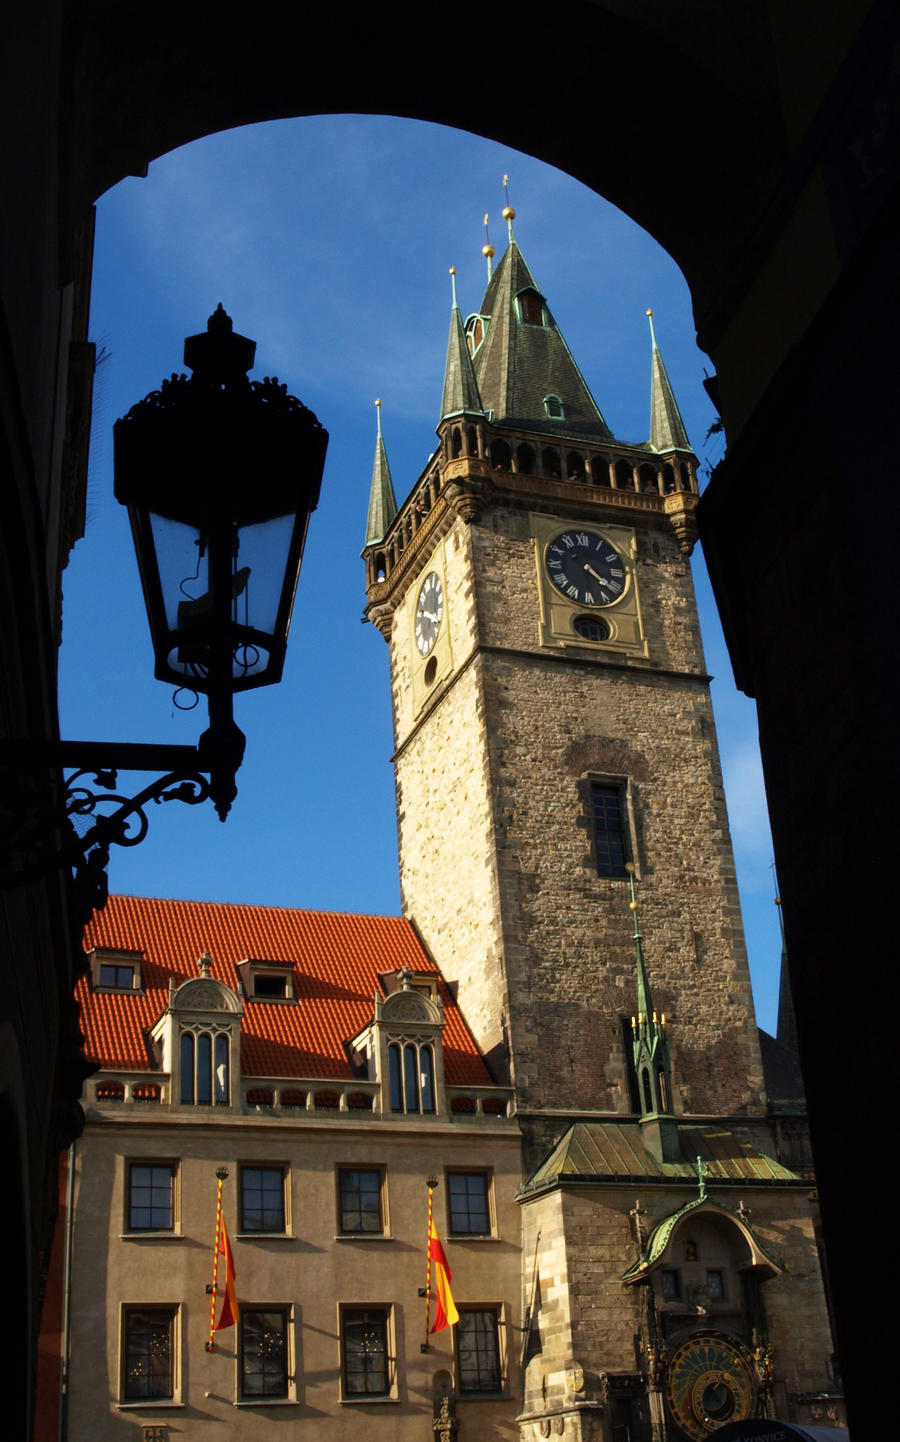 Old Town Hall Tower and Astronomical Clock01 by abelamario